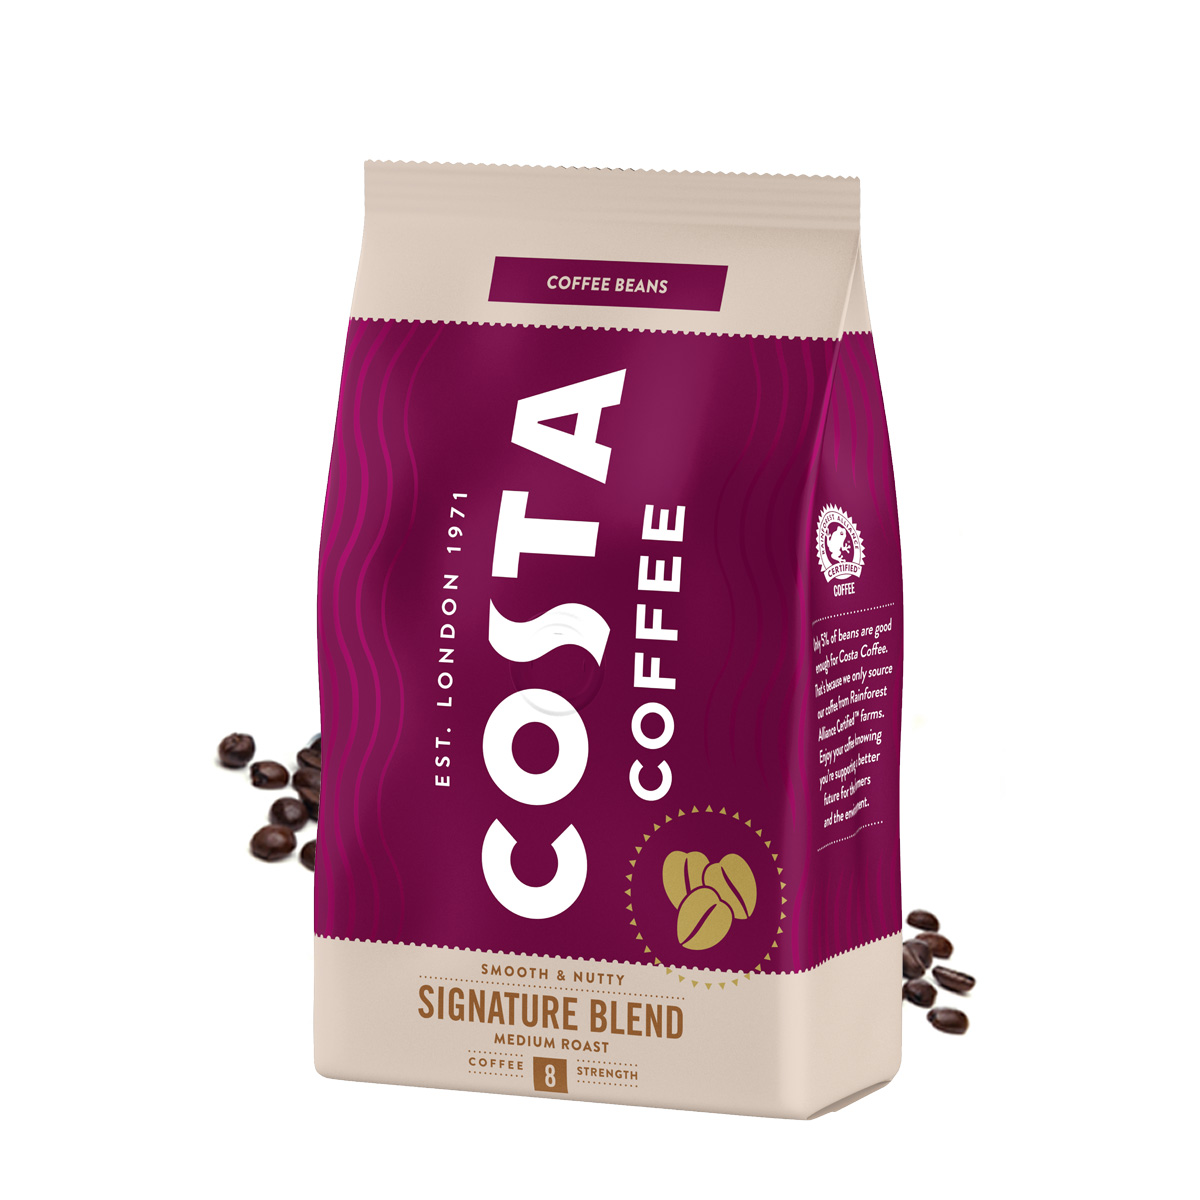 Costa Signature Blend Medium Roast cafea boabe 500g